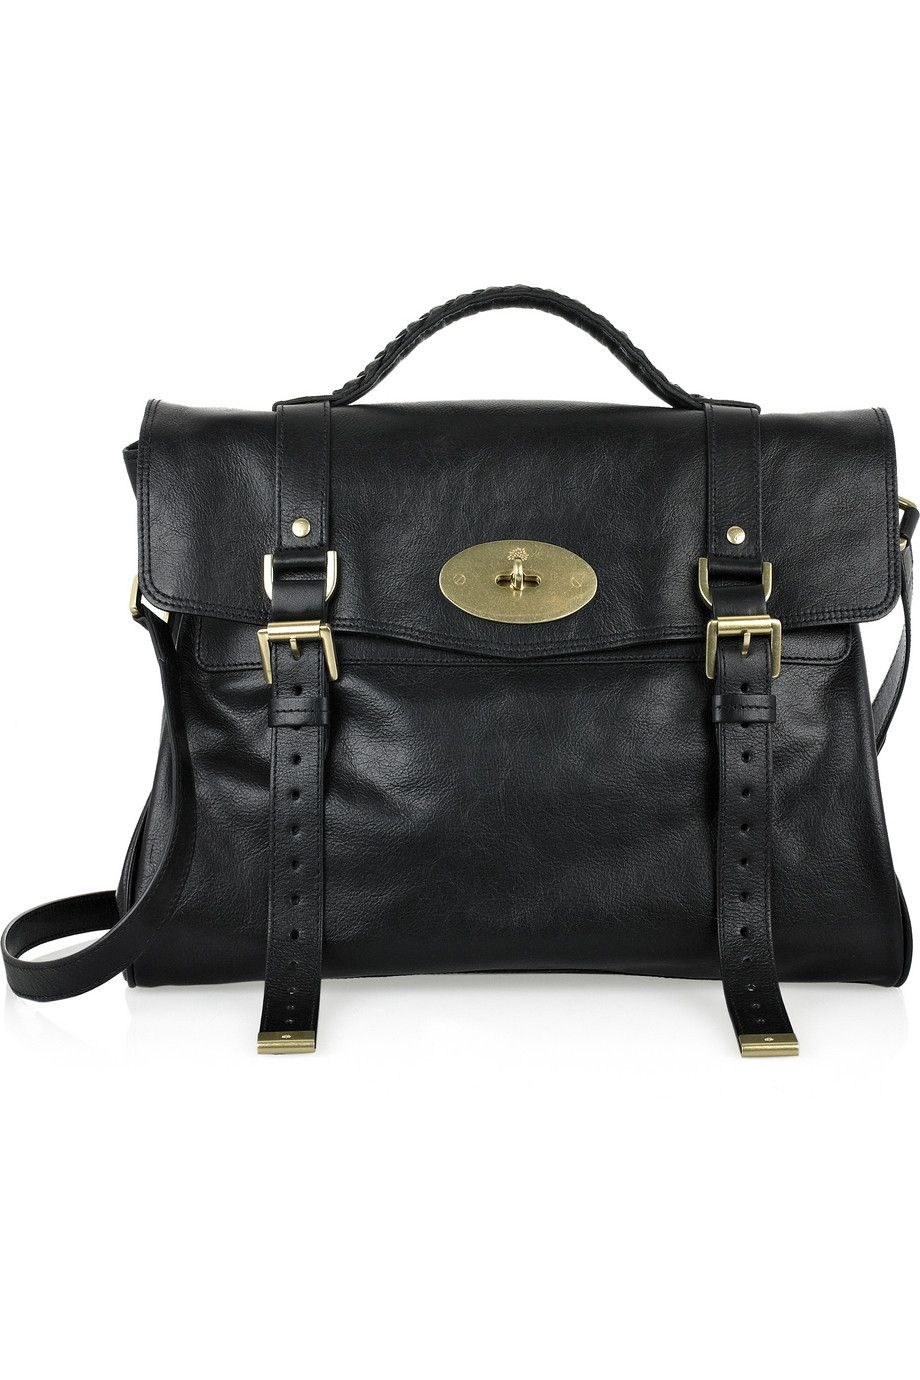 2ede16e6c4c One of my favorites. Light and holds a bunch. Great travel bag too. Mulberry  Oversized Alexa